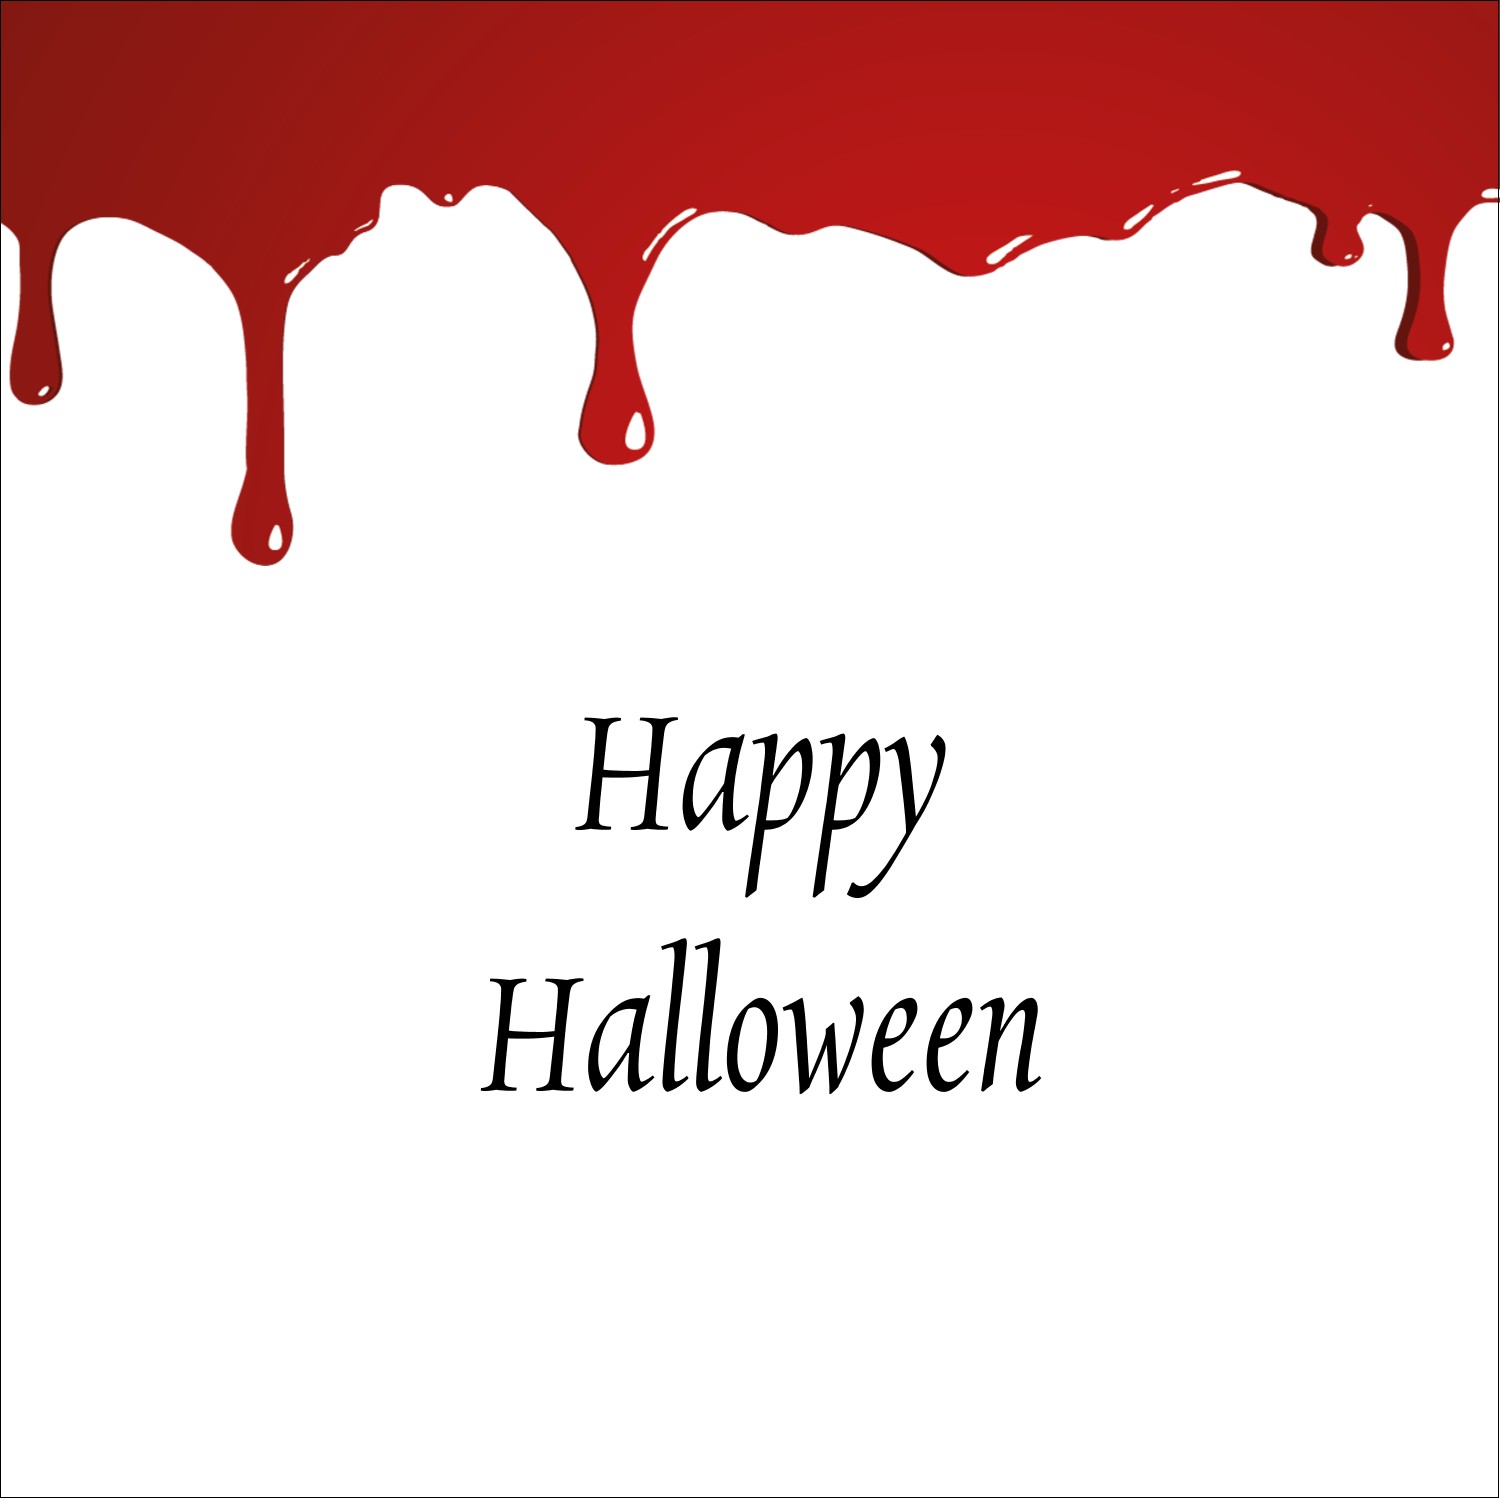 "2"" x 2"" Square Label - Bloody Halloween"